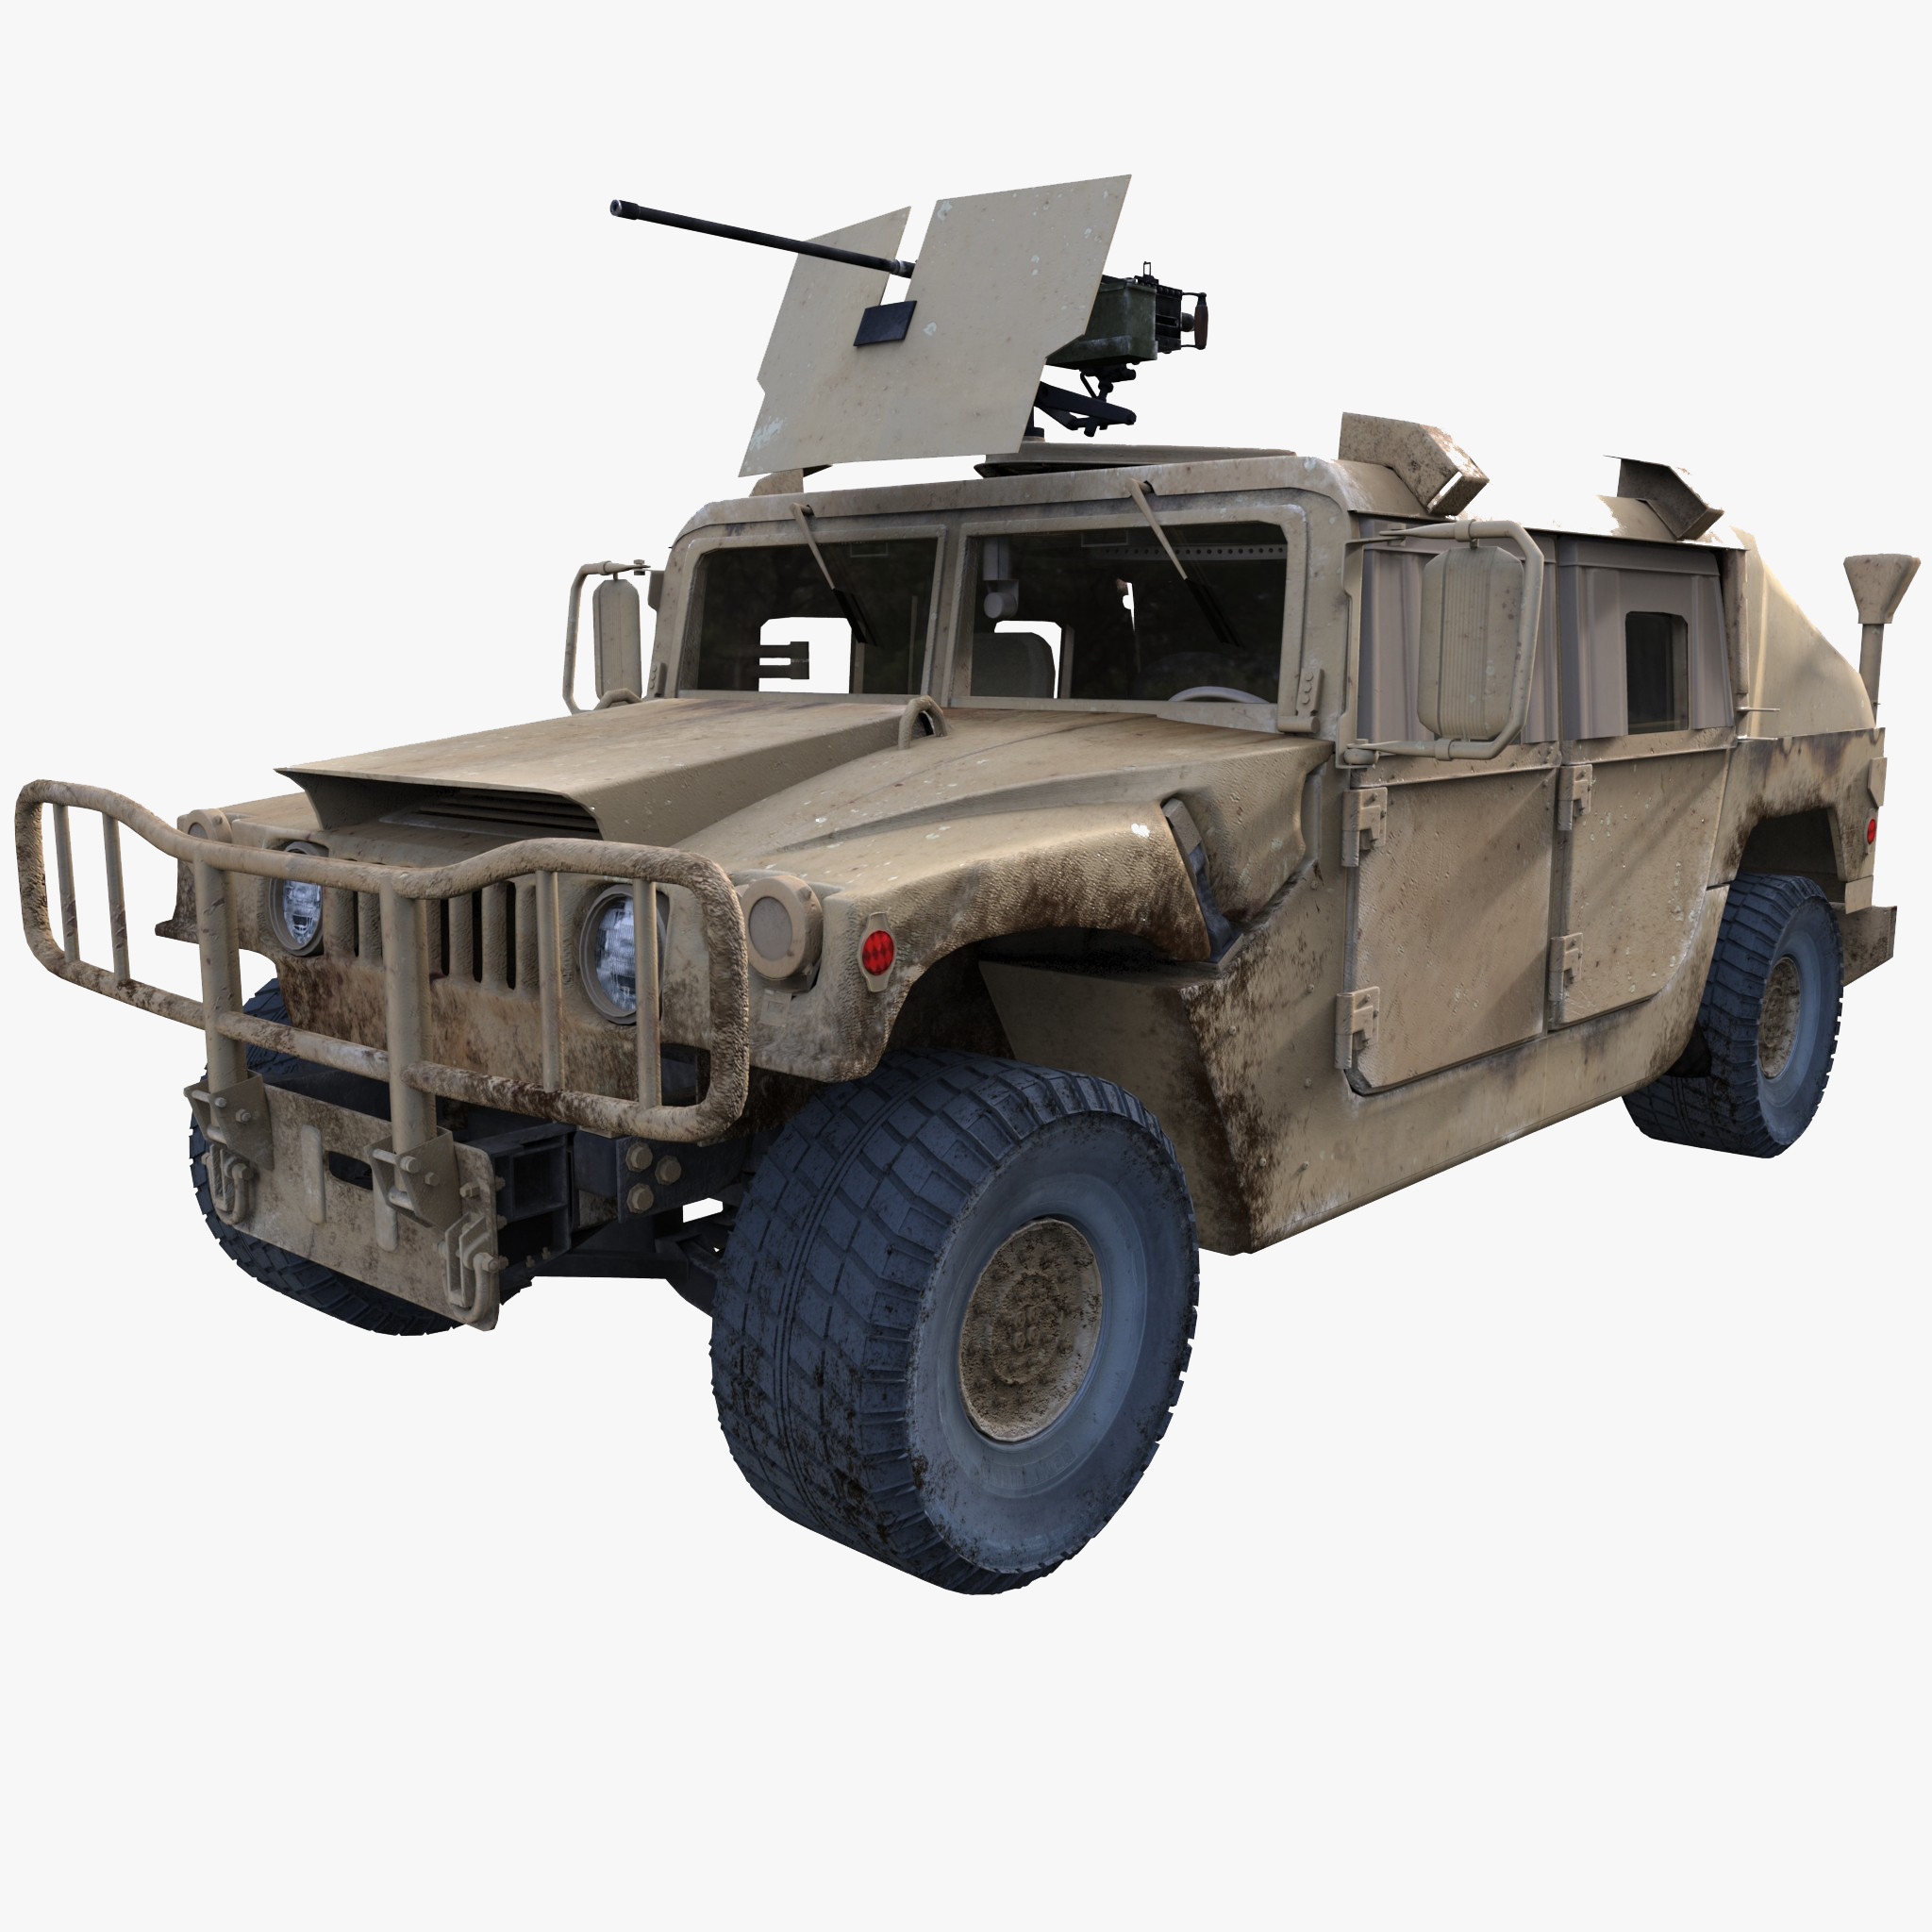 Humvee Military Hmmwv Model Available On Turbo Squid, The Worldu0027S Leading Provider Of Digital Models For Visualization, Films, Television, And Games. - Hmmwv, Transparent background PNG HD thumbnail